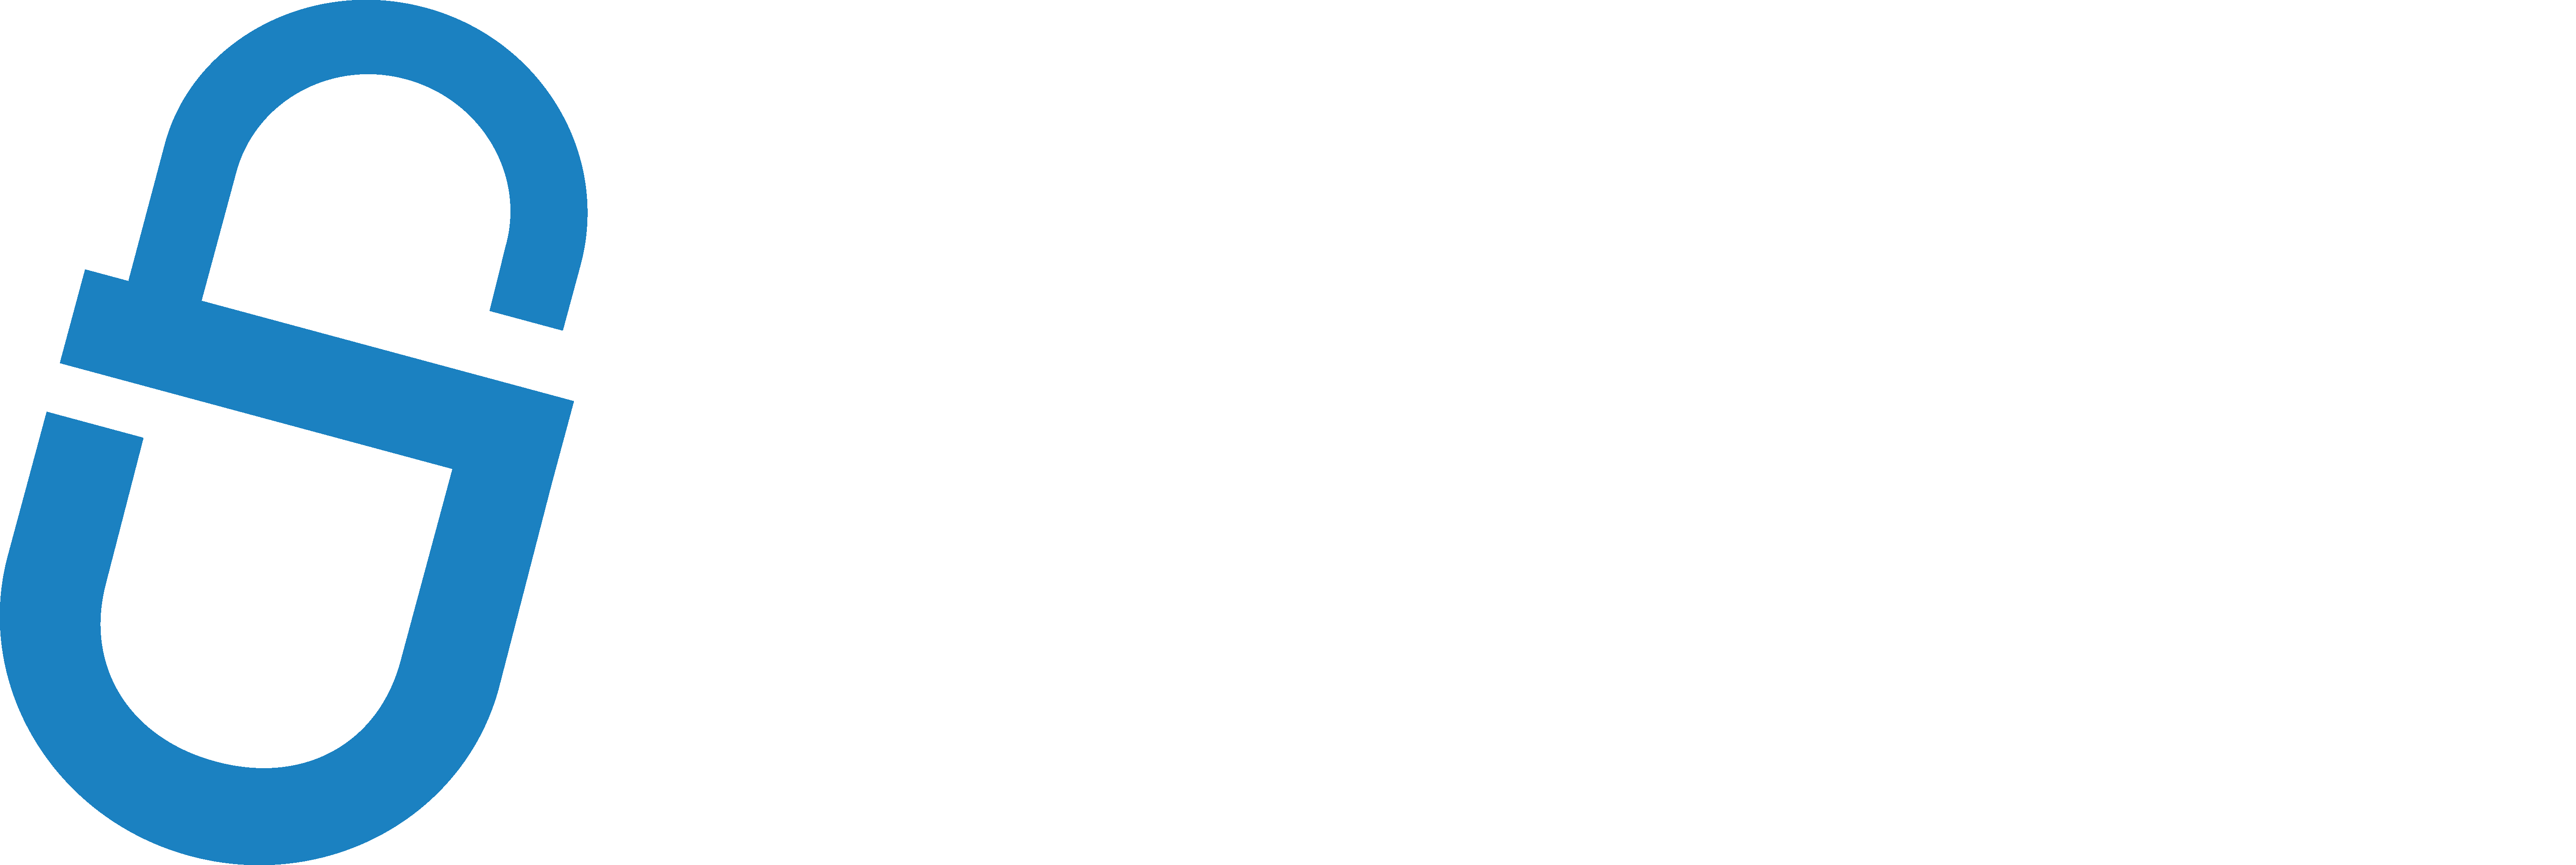 Securityinnovation